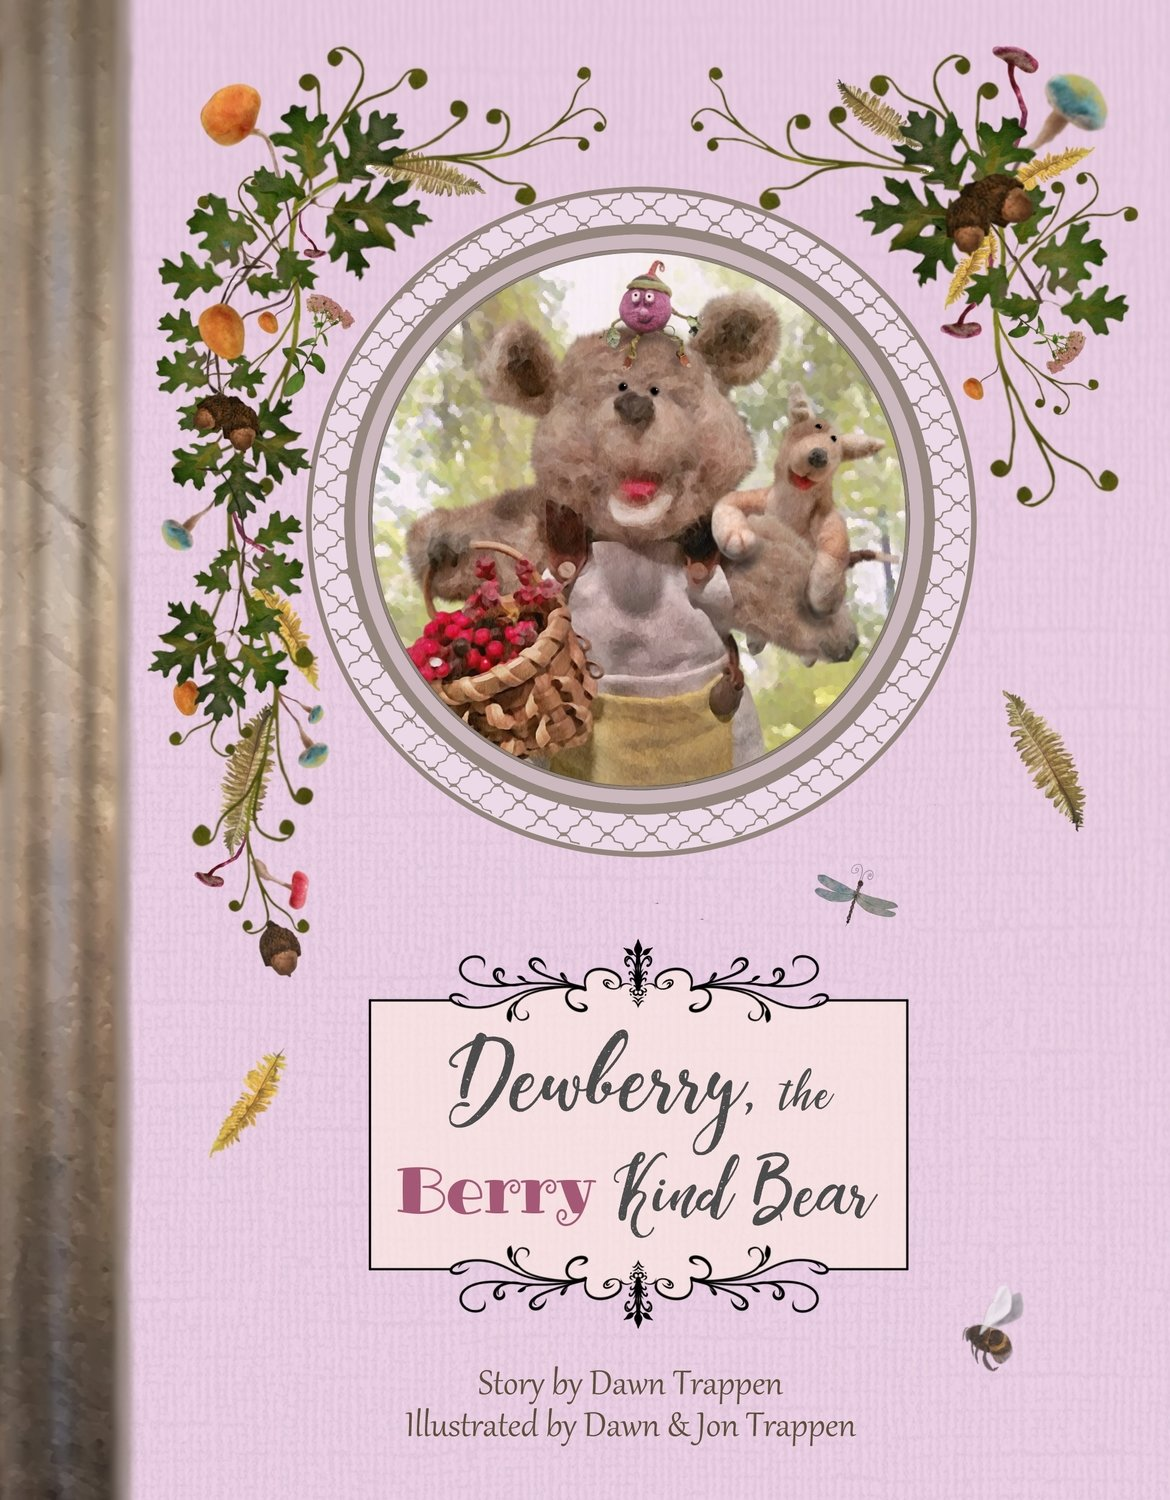 Dewberry, the Berry Kind Bear